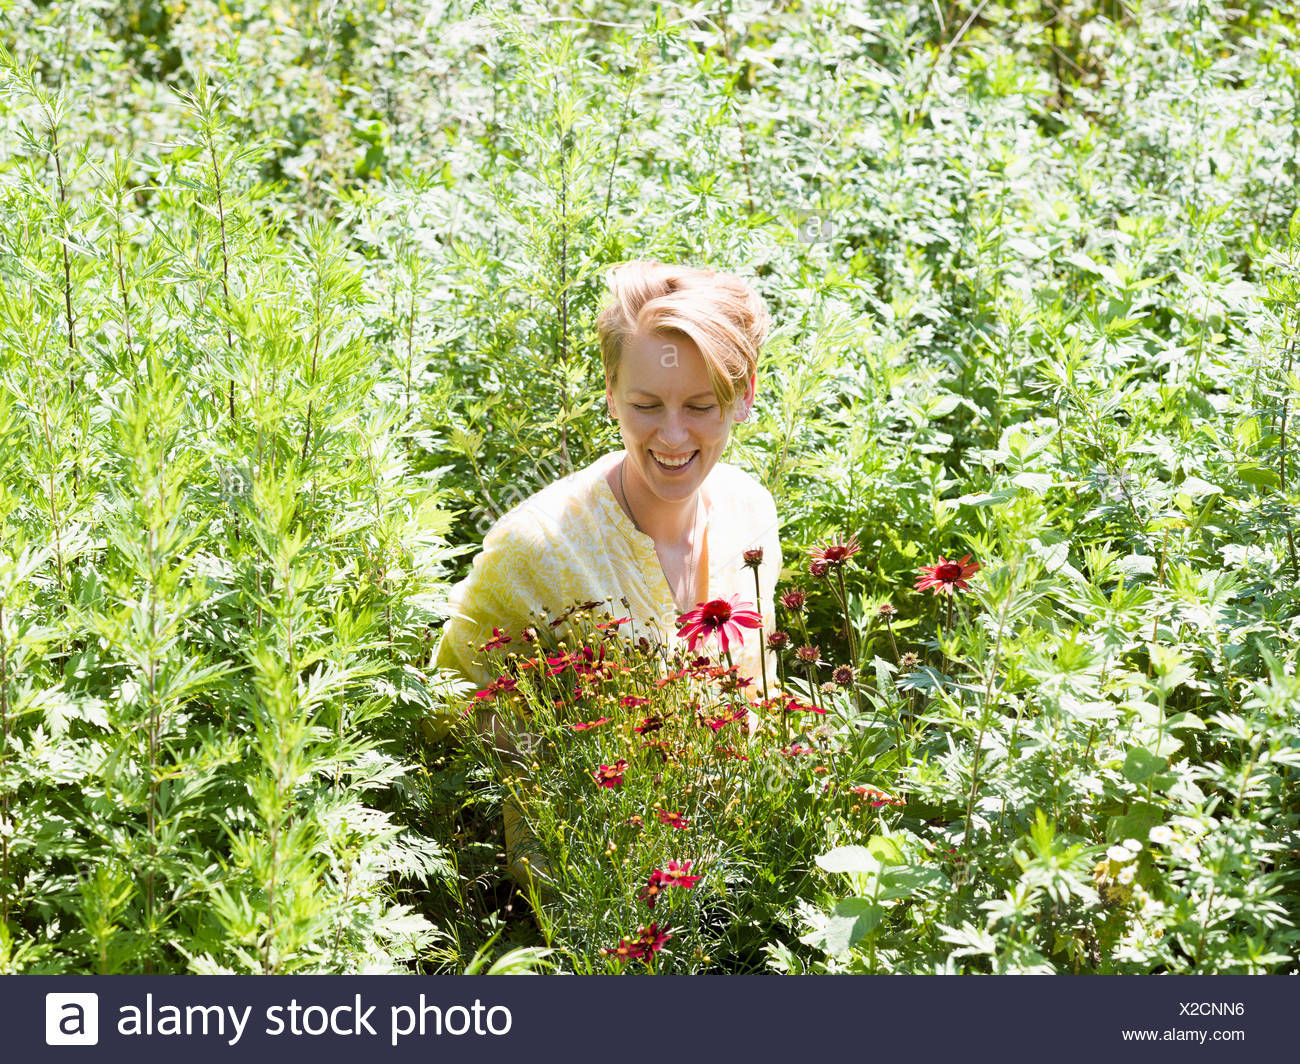 A young woman standing in a perennials bed surrounded by plants and flowers at a plant nursery. - Stock Image